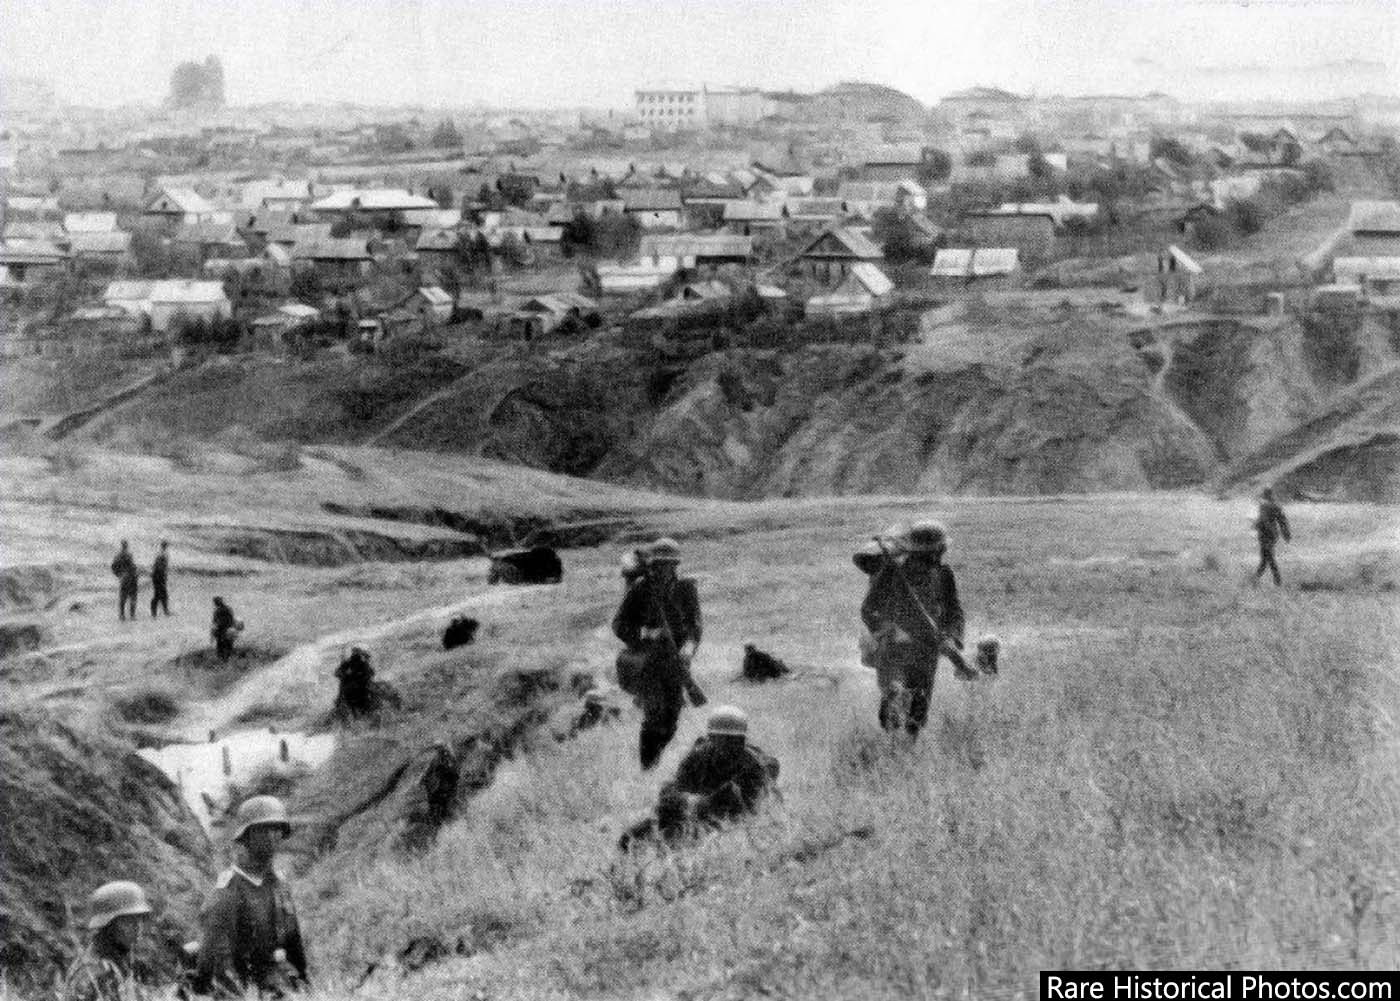 German soldiers on the outskirts of Stalingrad. 1942.